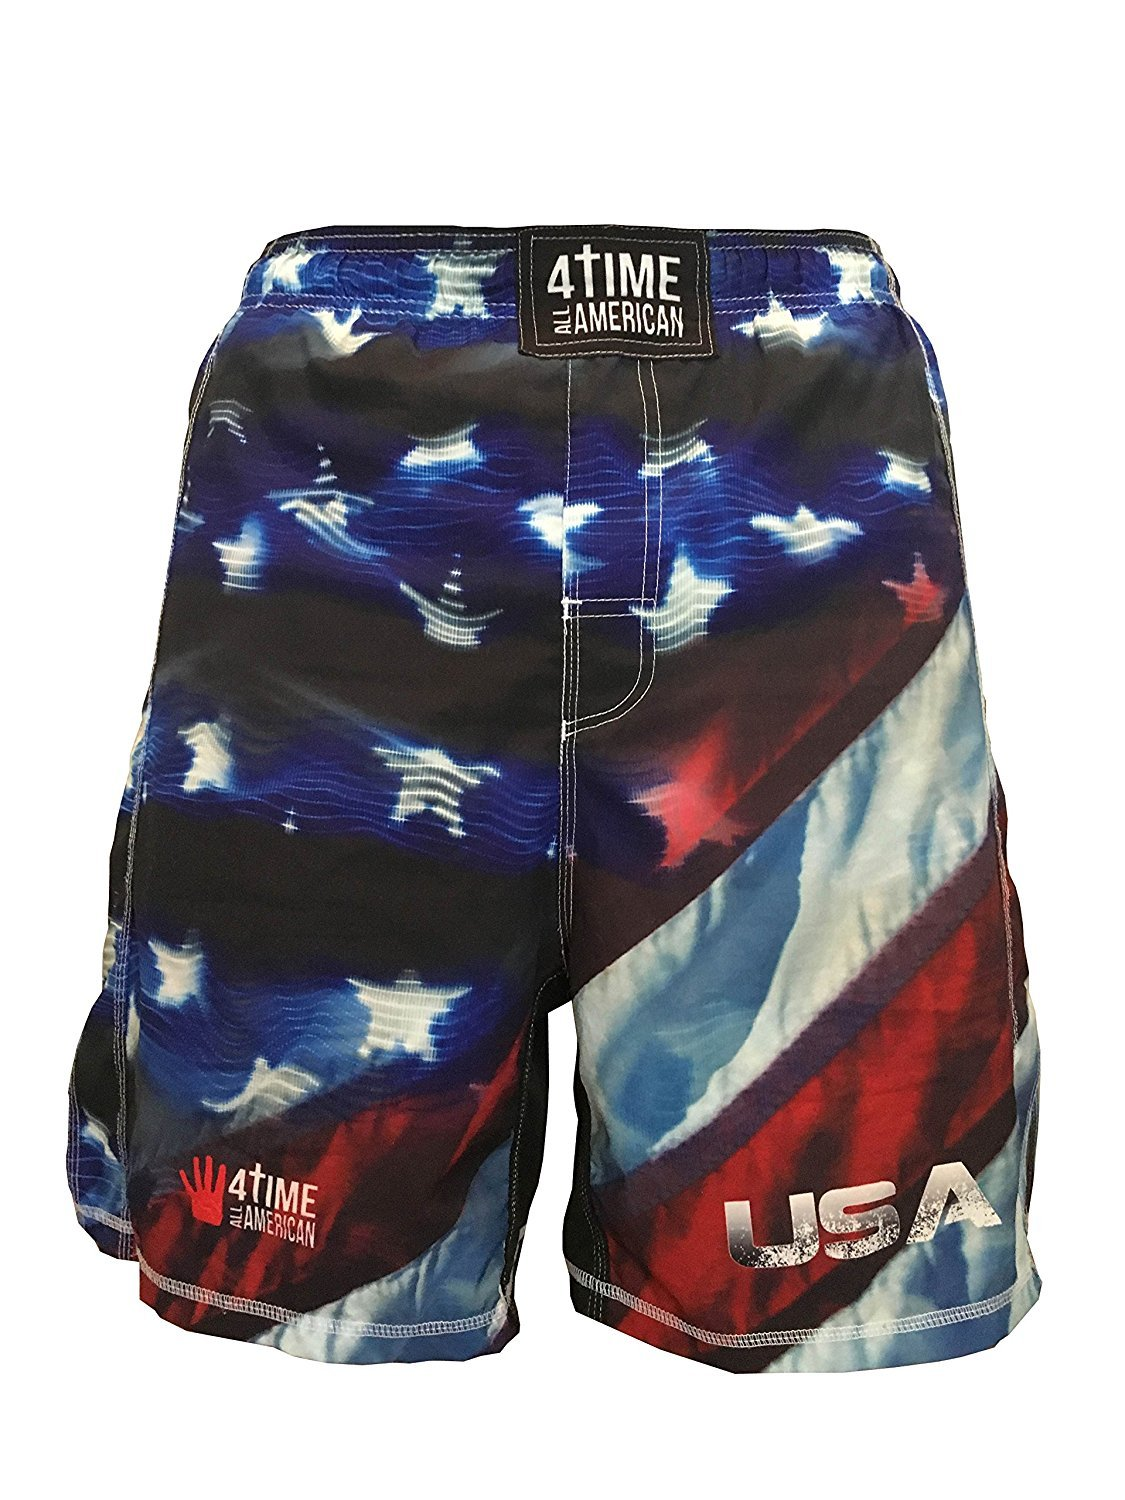 USA Westling, MMA, NoGI, BJJ, fight shorts size L by 4-Time All American